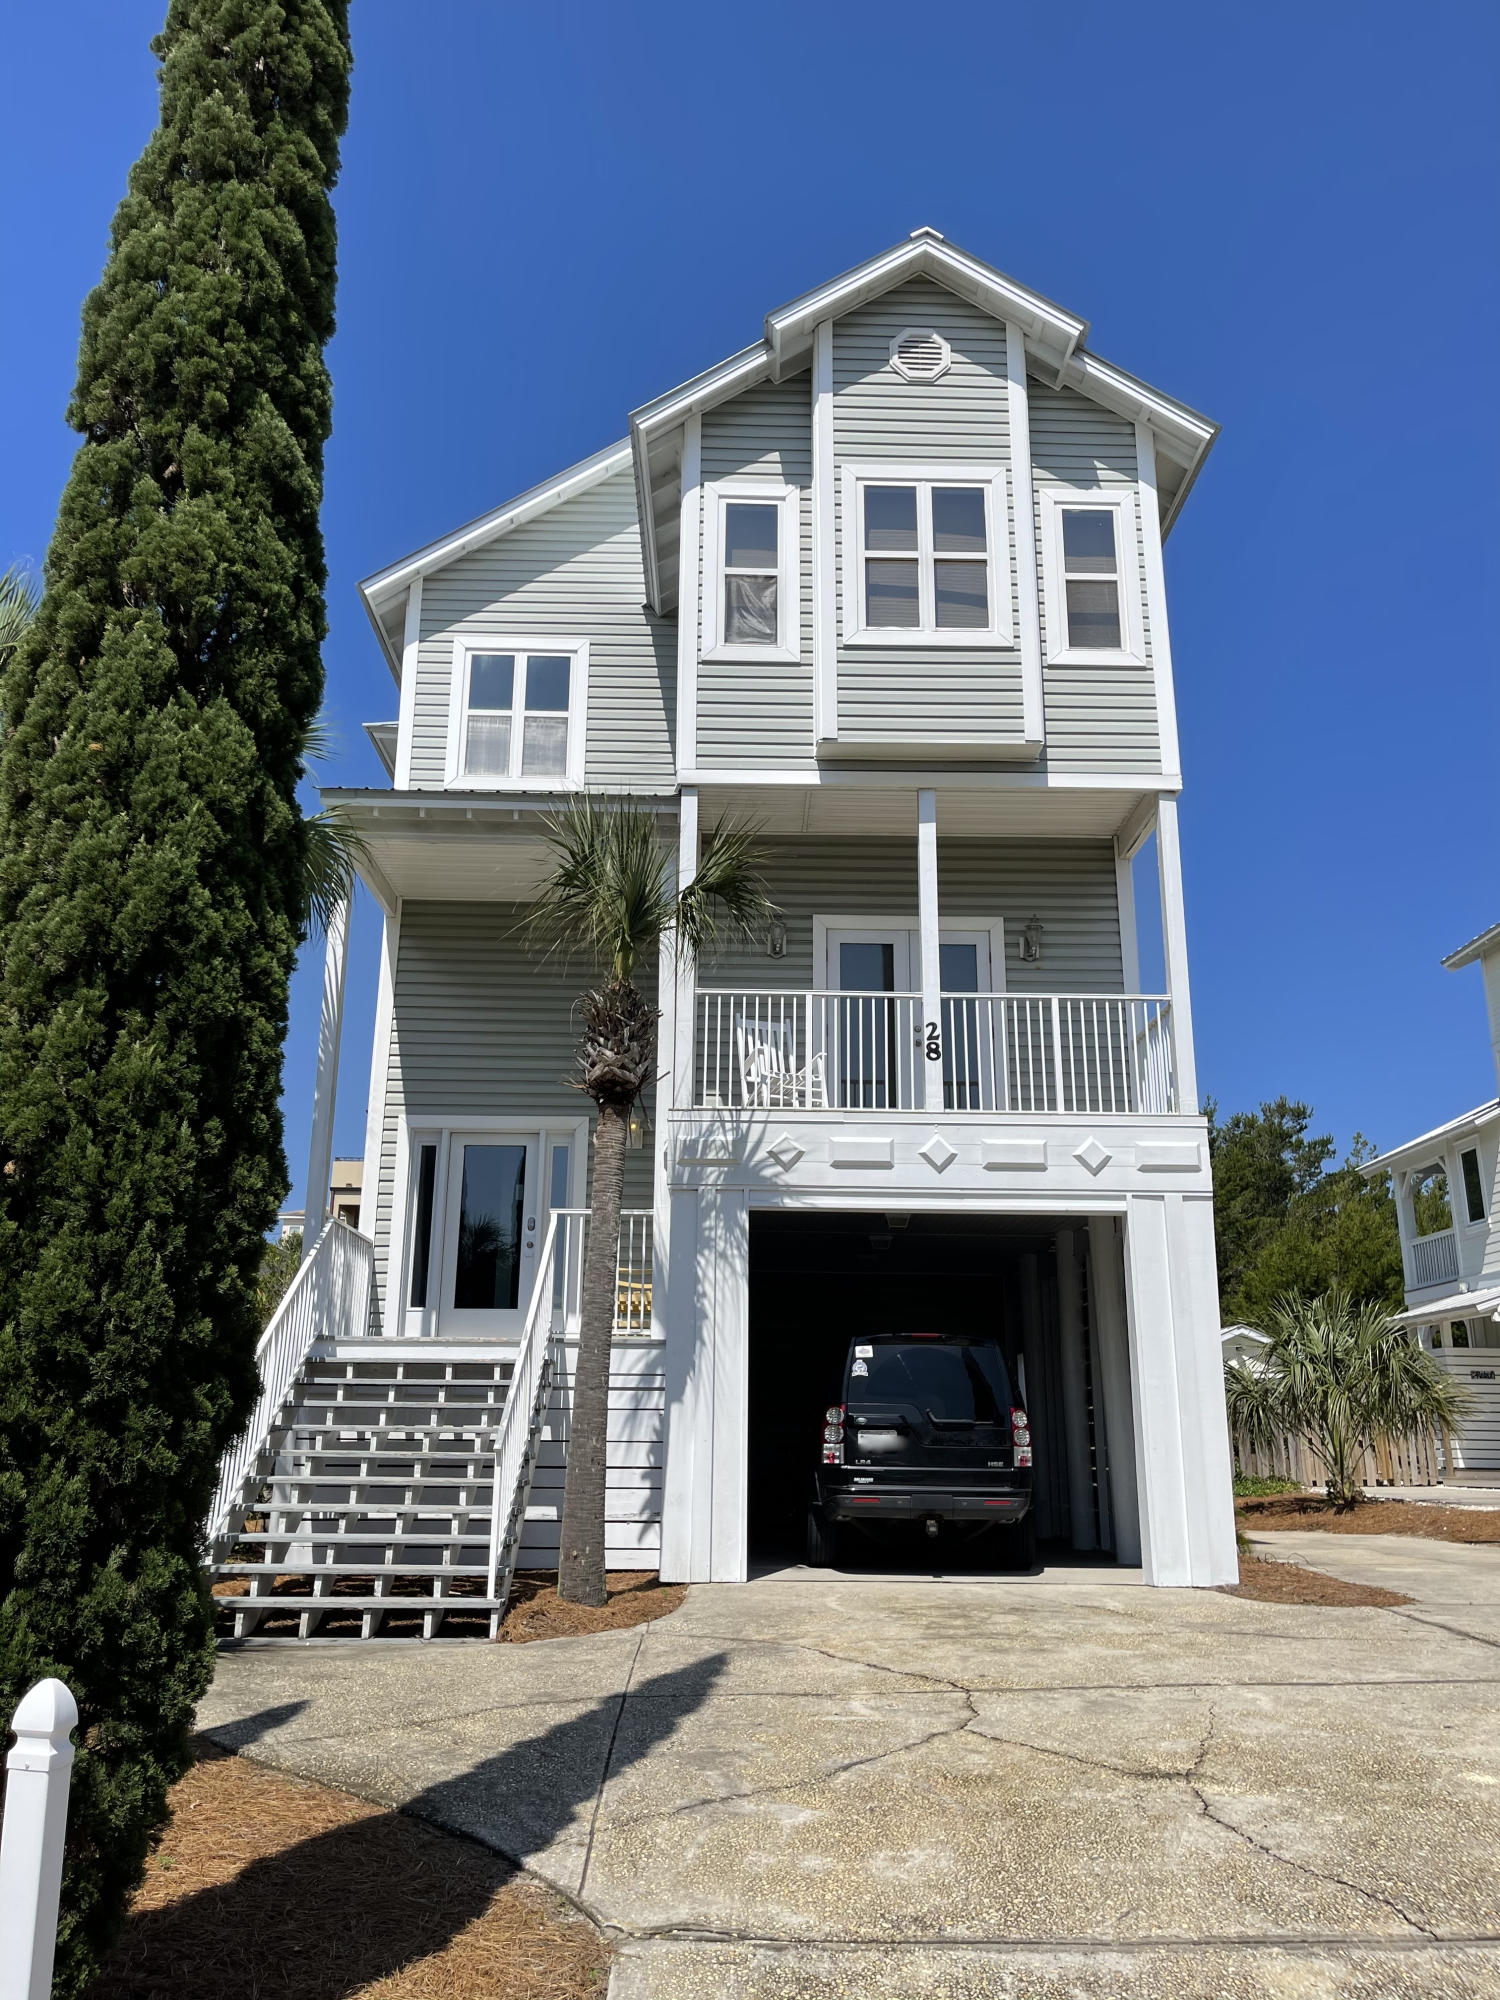 South of 30A, 5 bedroom, 5 bath with private pool.  Walking distance to public beach access and rental ready. Home is sold fully furnished with exception to kitchen bench and chairs and items in the Owner's Closet.   First floor has tiled floors, 2 sets of bunk beds, full bath with walk-in shower and kitchenette. Second floor has 3 bedrooms and 3 baths with vinyl plank flooring throughout 2nd and 3rd floors.  Second floor has a  laundry room with tiled floors, 3 bedrooms and 2 full baths.  One of the bedrooms has a deck that over looks the pool.  As you go to the 3rd floor, you are greeted with a living room, dining area and kitchen.  You have a gulf view from the 3rd floor and master suite.  Sit on the covered deck overlooking the pool. Kitchen has a center island and barstool seating, stainless steel appliances and quartz countertop. Master suite has a deck that faces east to see enjoy morning sunrise.  Large backyard with pool, grilling for large gatherings and soaking up the sunshine.  A gas rinnai keeps you from running out of hot water,